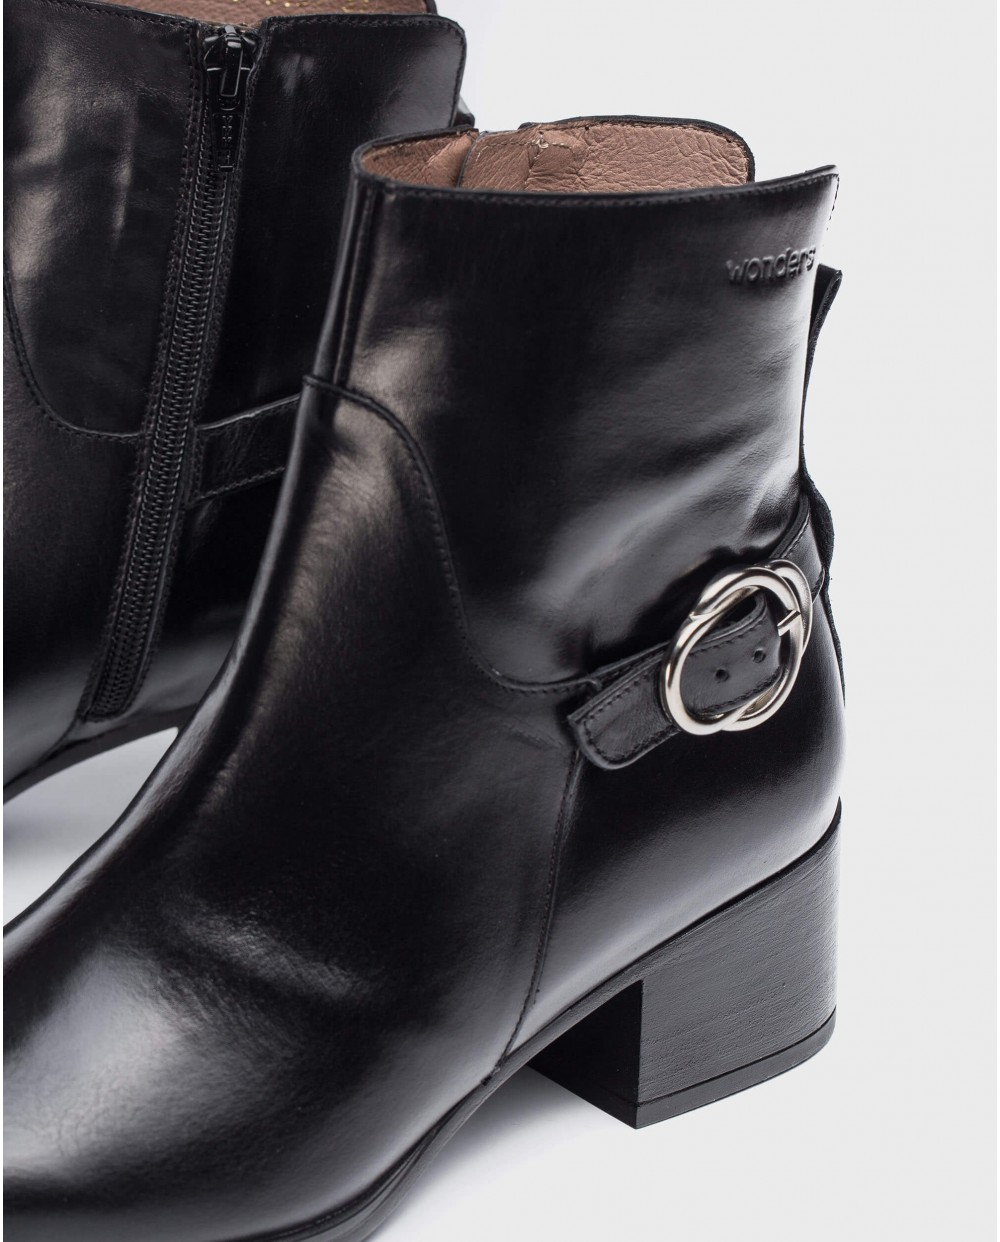 Wonders-Ankle Boots-Black Niza Ankle Boot